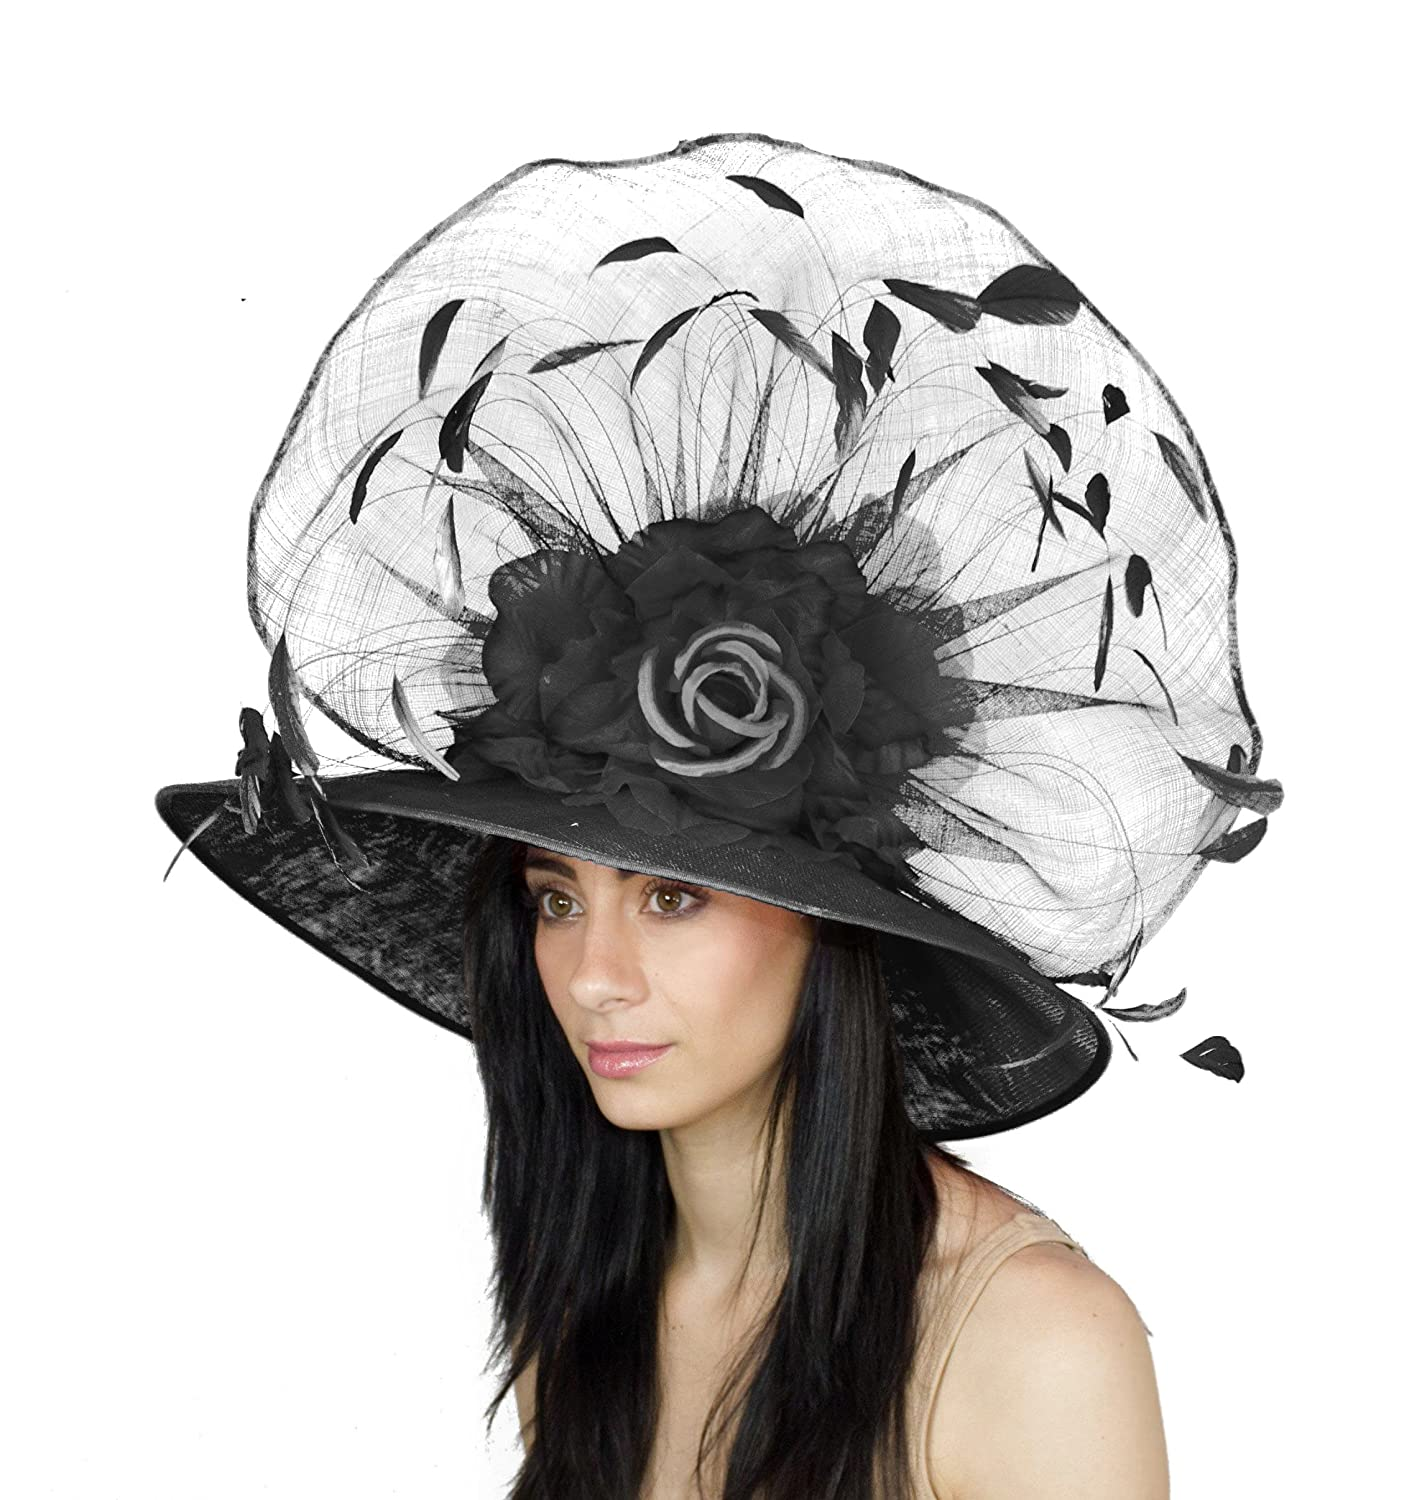 Amazon.com  Hats By Cressida Beautiful Kentucky Derby Silk and Feather  Large Hat Women s - Black  Clothing 0d43fede7723